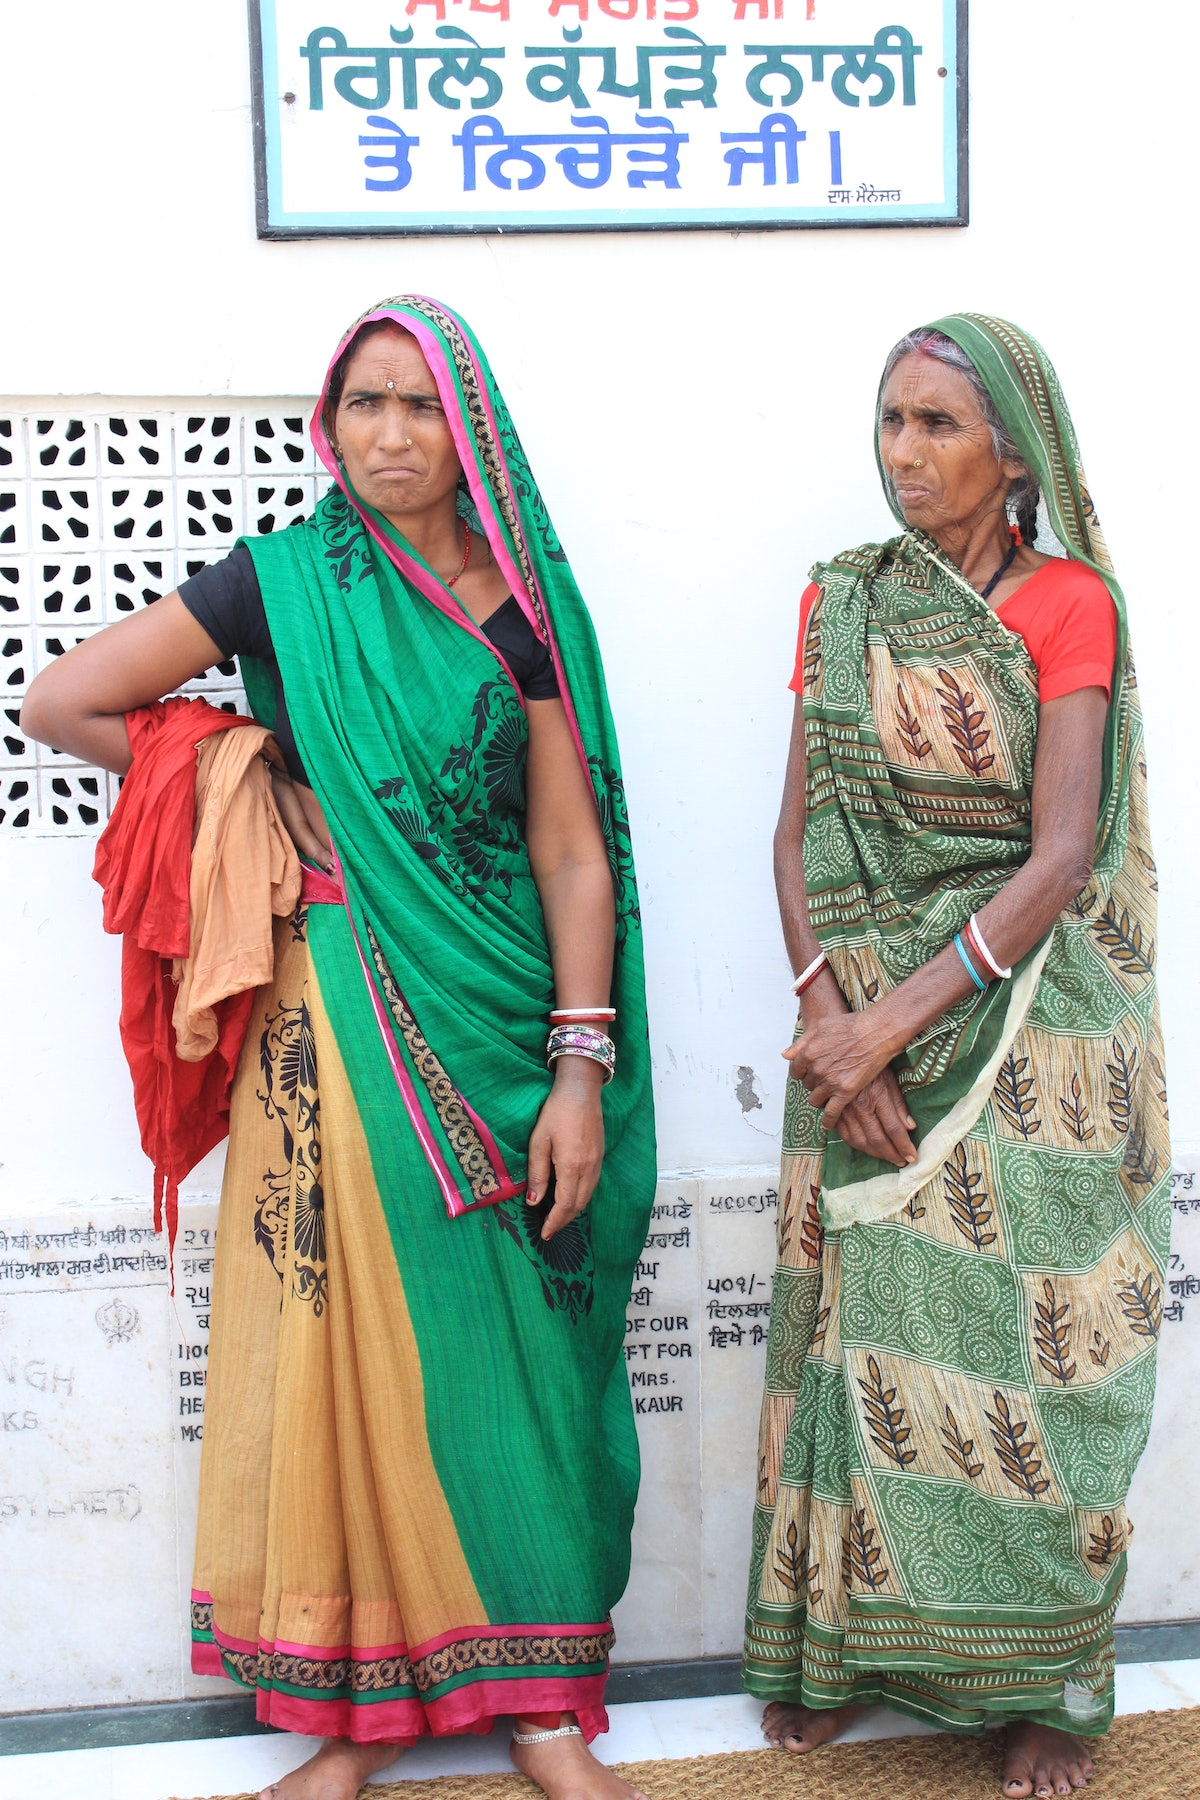 Women at Golden Temple Anndra Neen Annette and Phoebe Stephens India